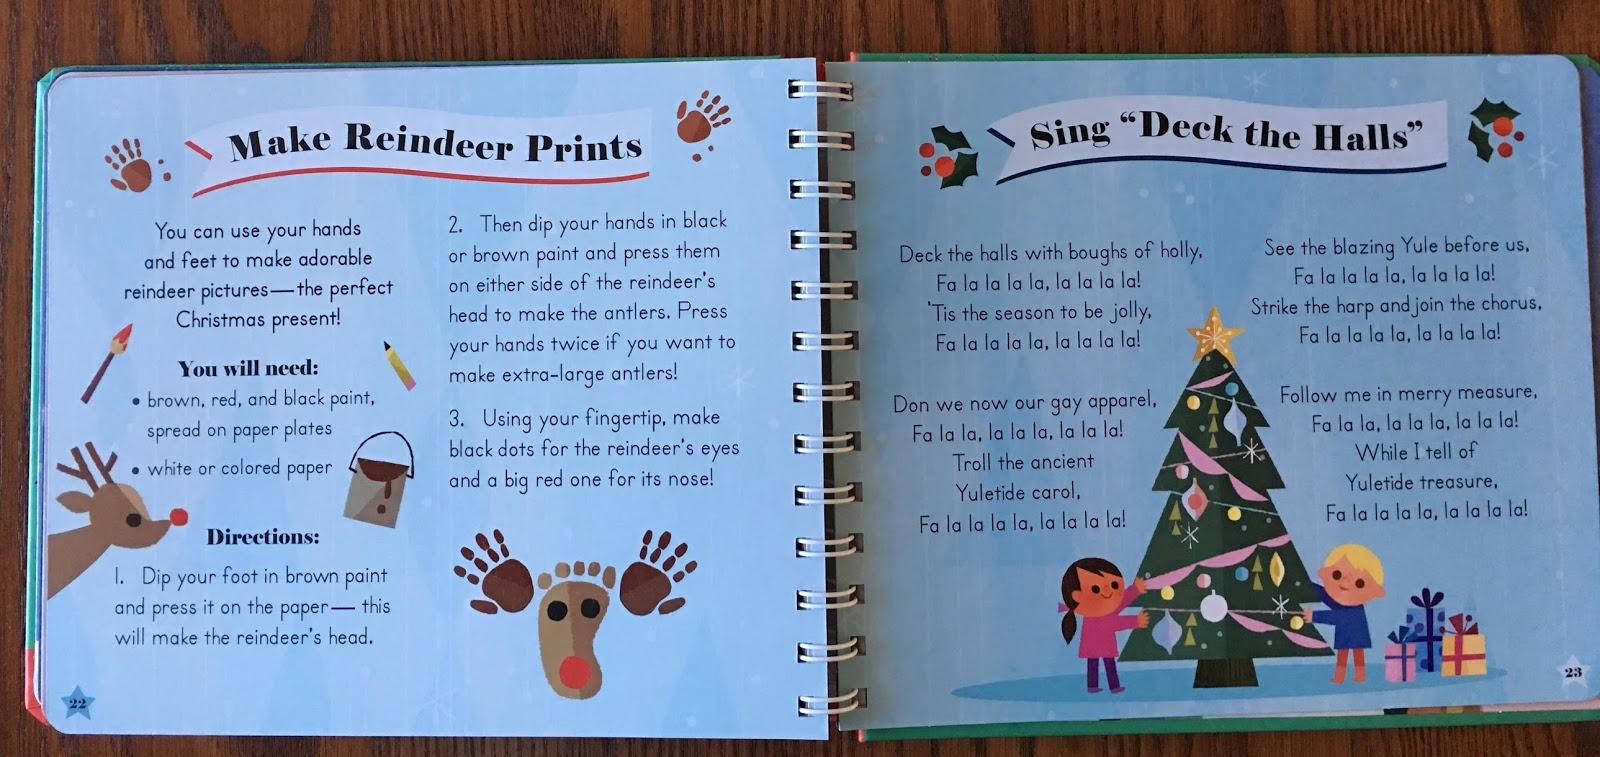 about the bookactivity this innovative new activity book includes ten press out pieces to play and decorate with the simple die cut shapes